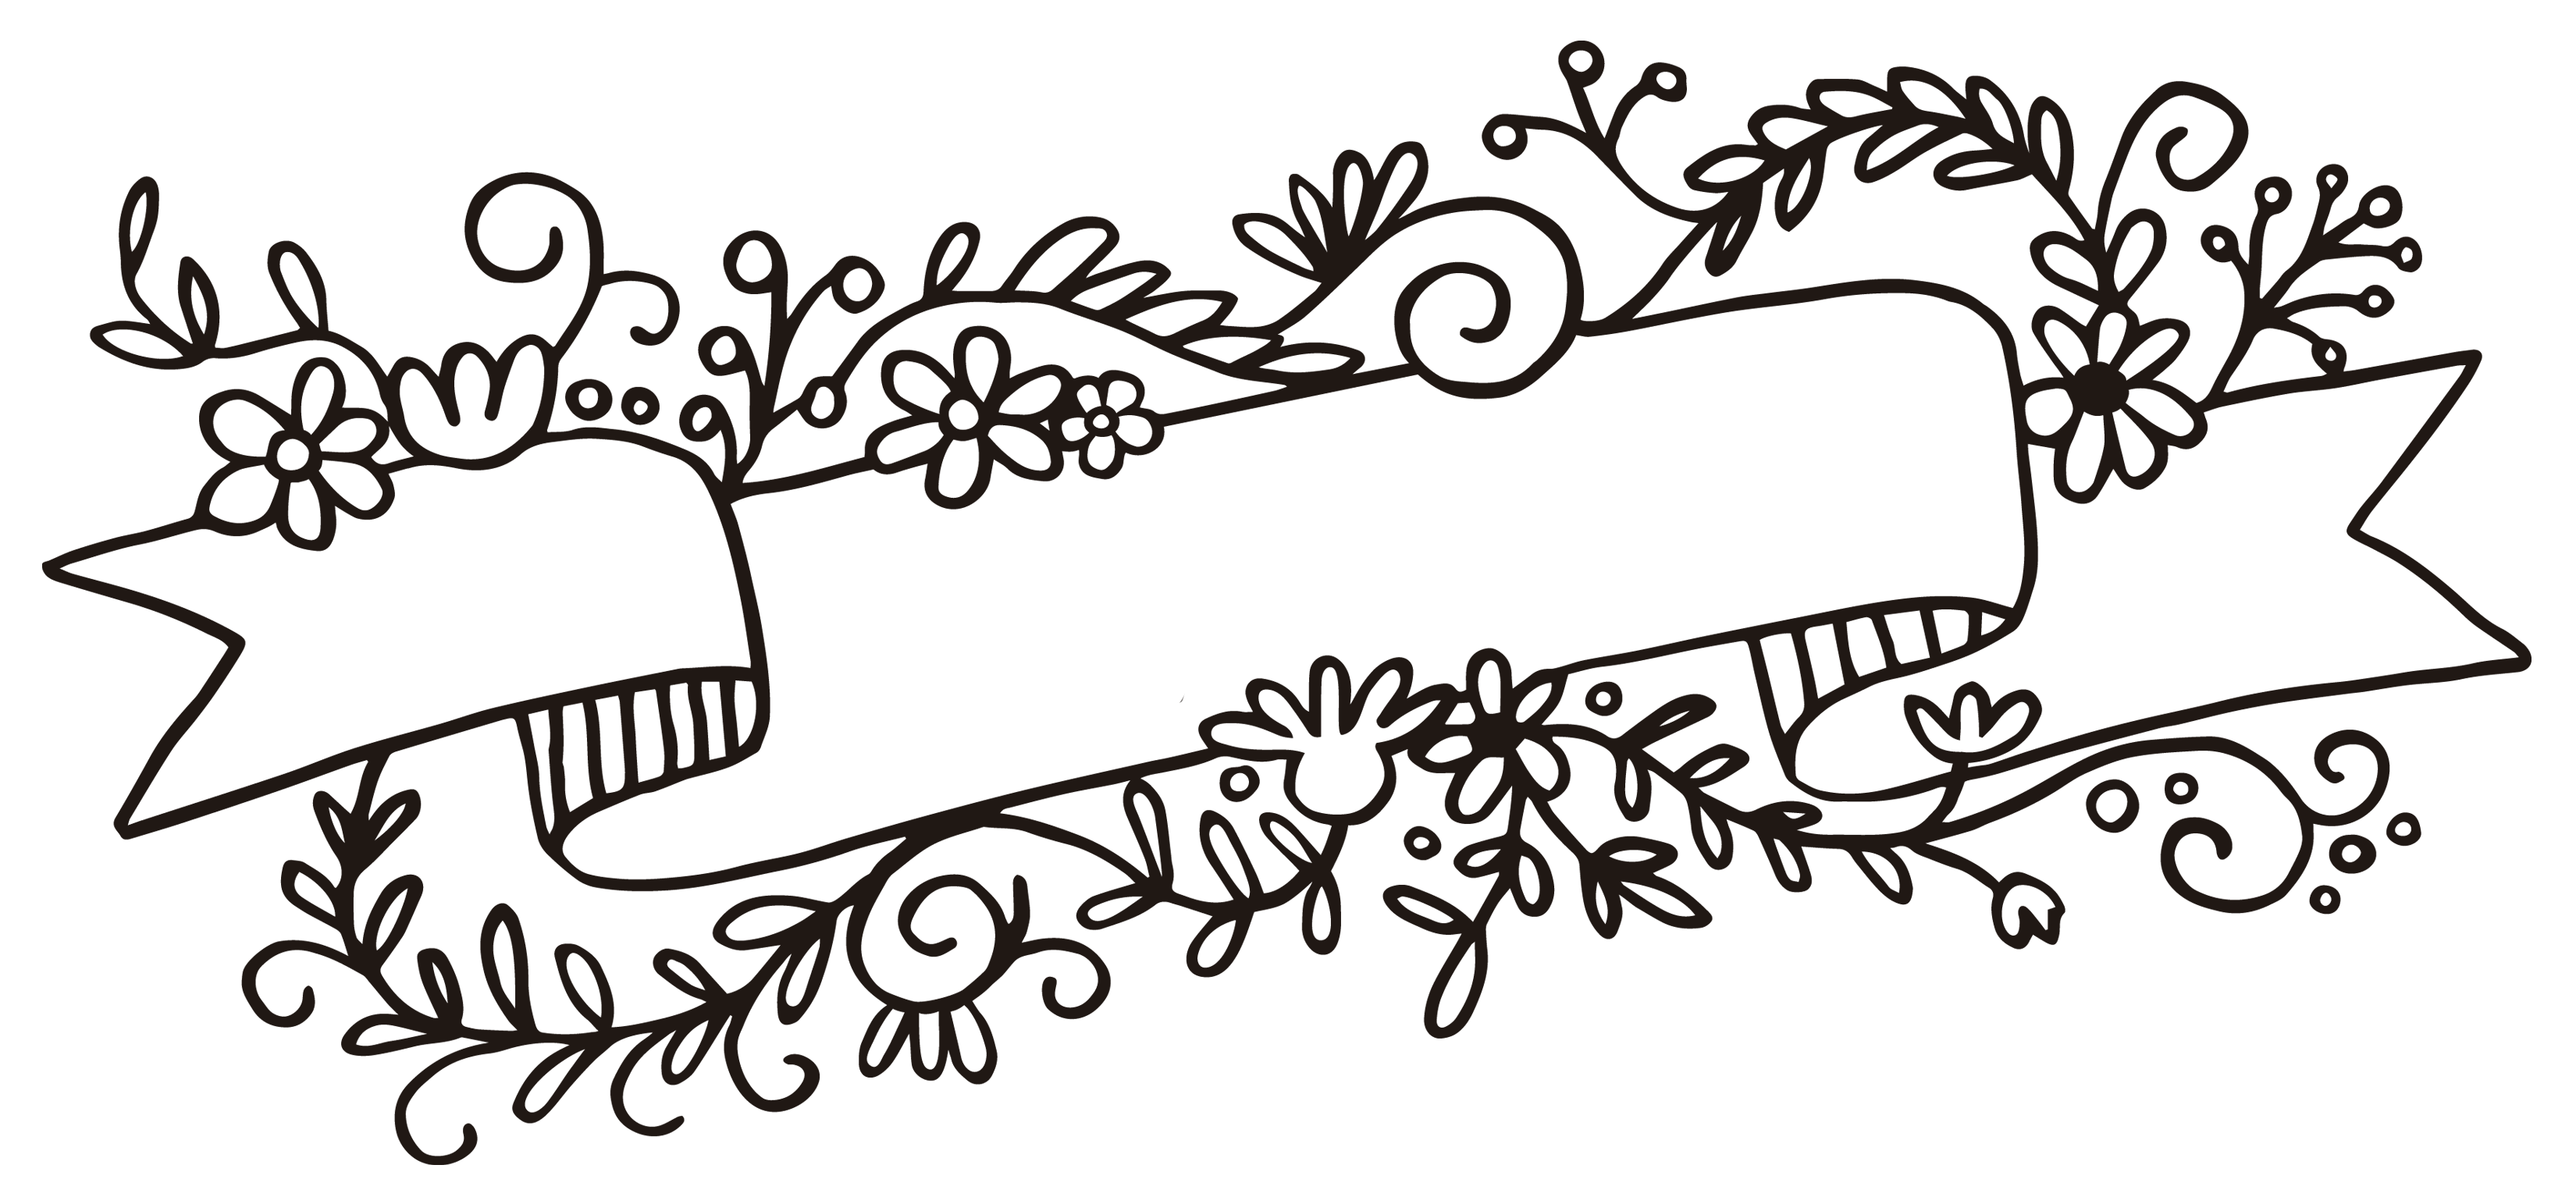 Black and white flower banner clipart image free library Rubber stamp Flower Web banner Clip art - floral banner 3300*1543 ... image free library